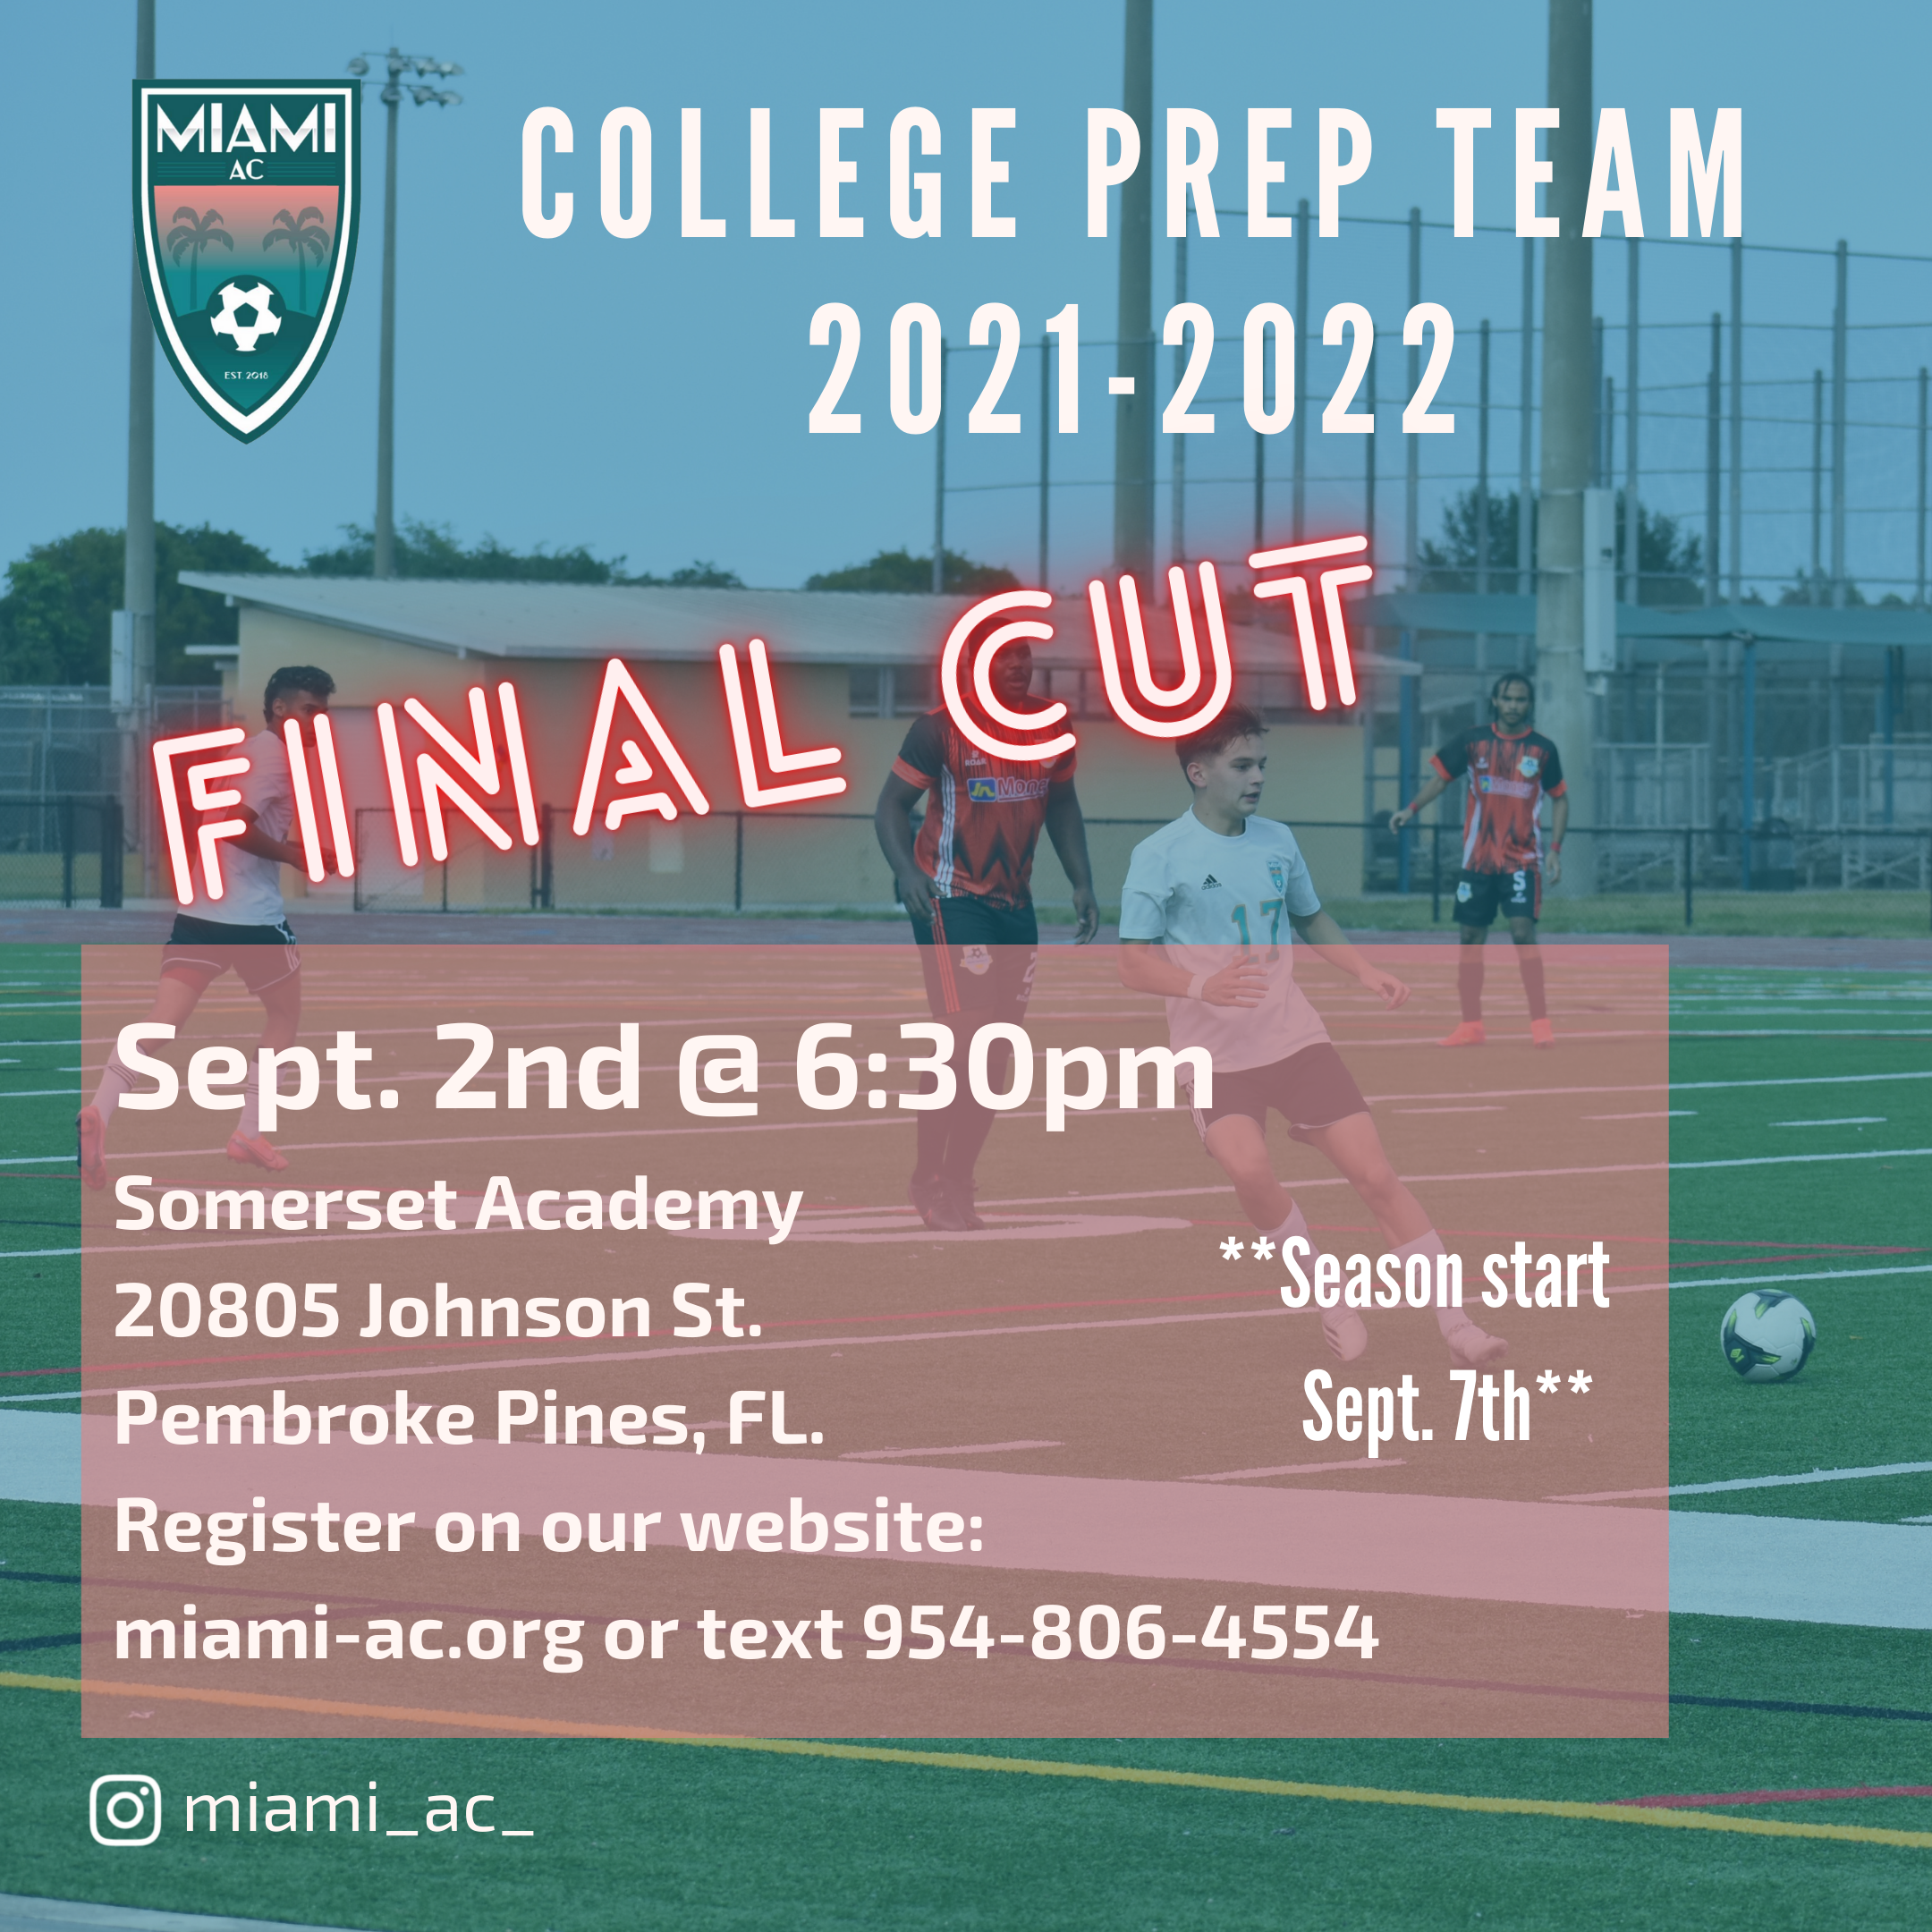 Tryouts for College Prep Team 2021-22